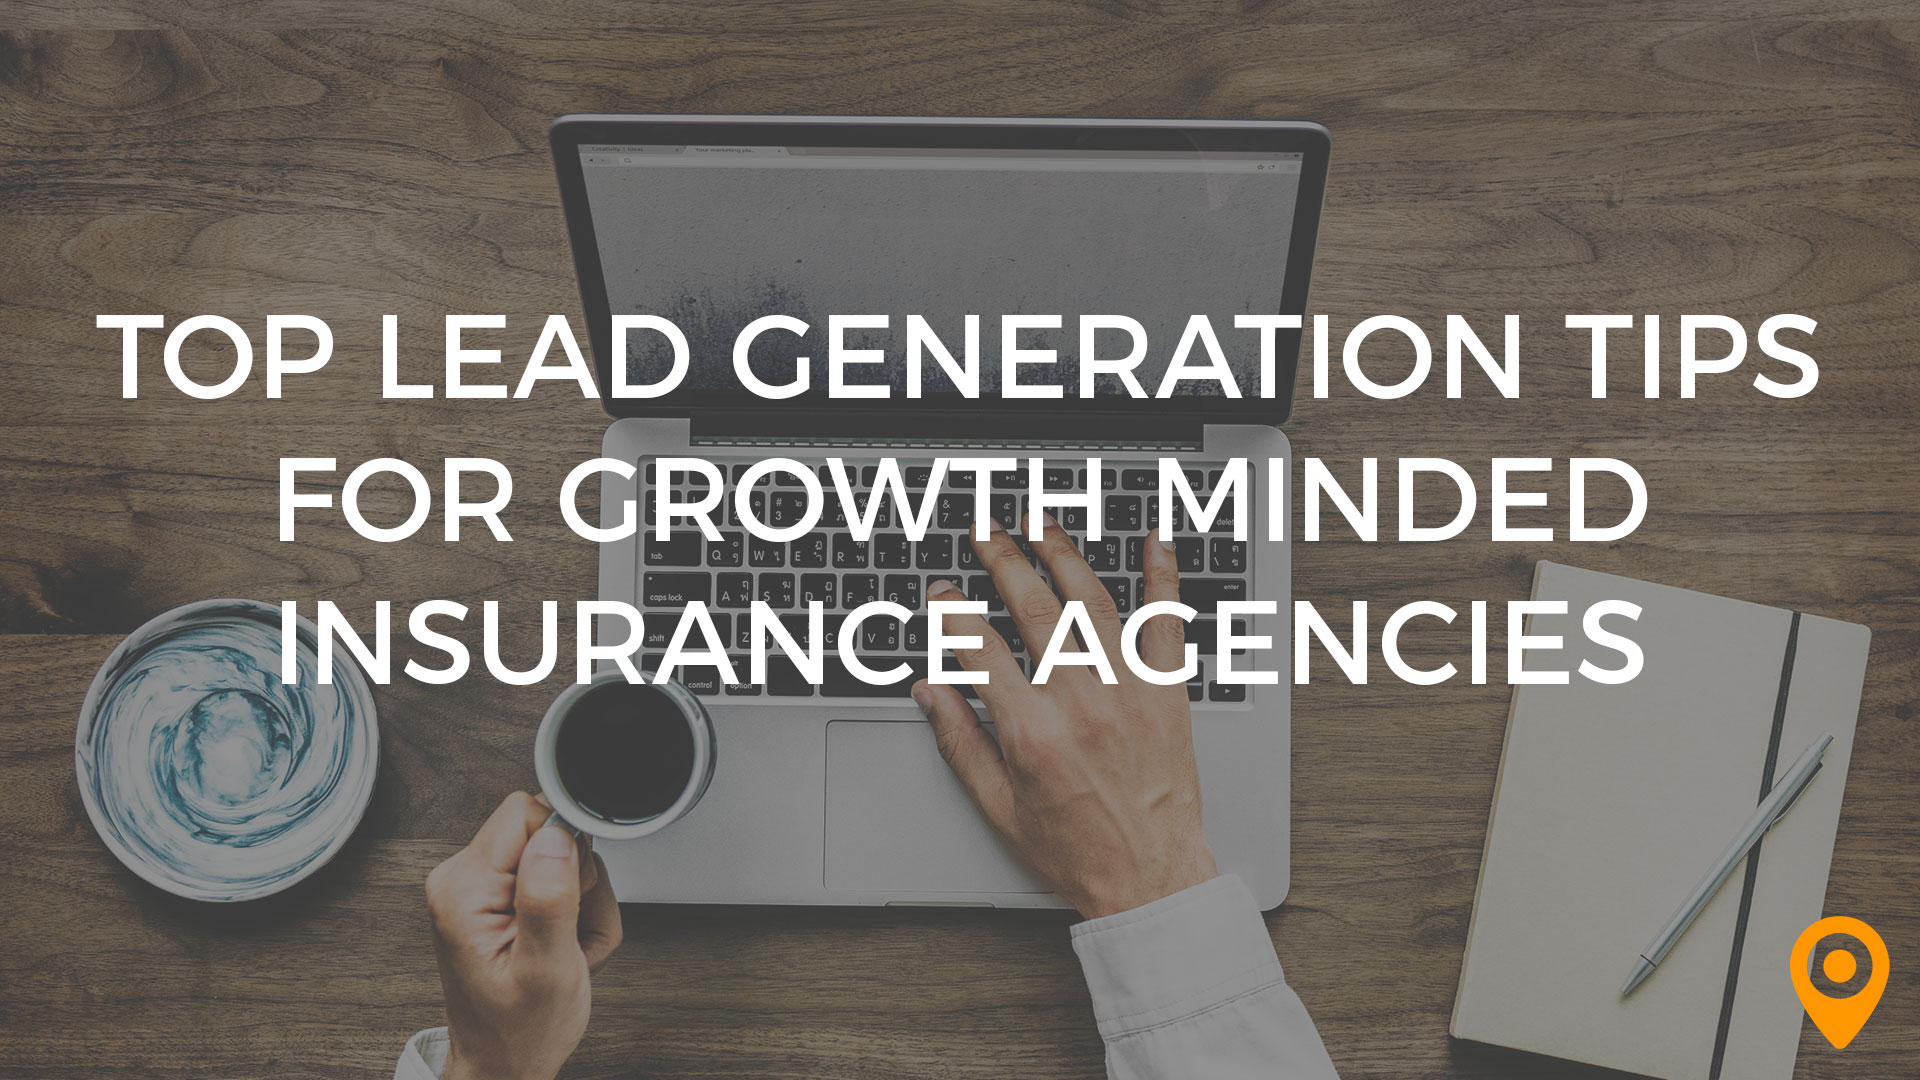 Top Lead Gen Tips for Insurance Agencies